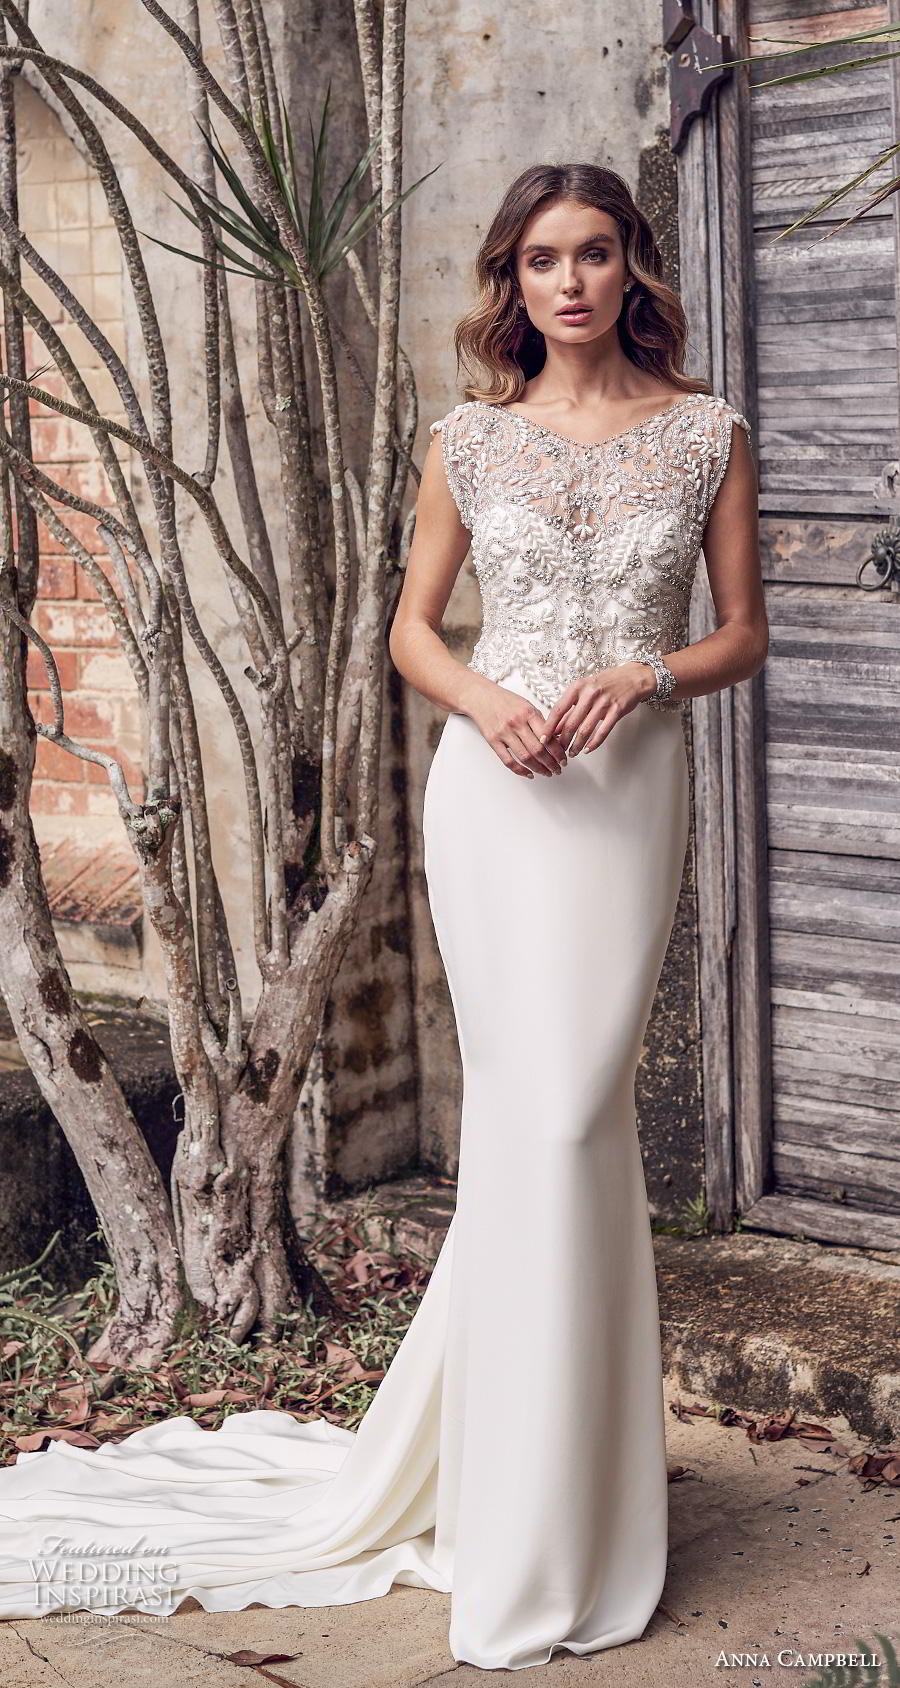 anna campbell 2019 bridal cap sleeves v neck heavily embellished bodice glitzy romantic sheath wedding dress backless scoop back chapel train (3) mv